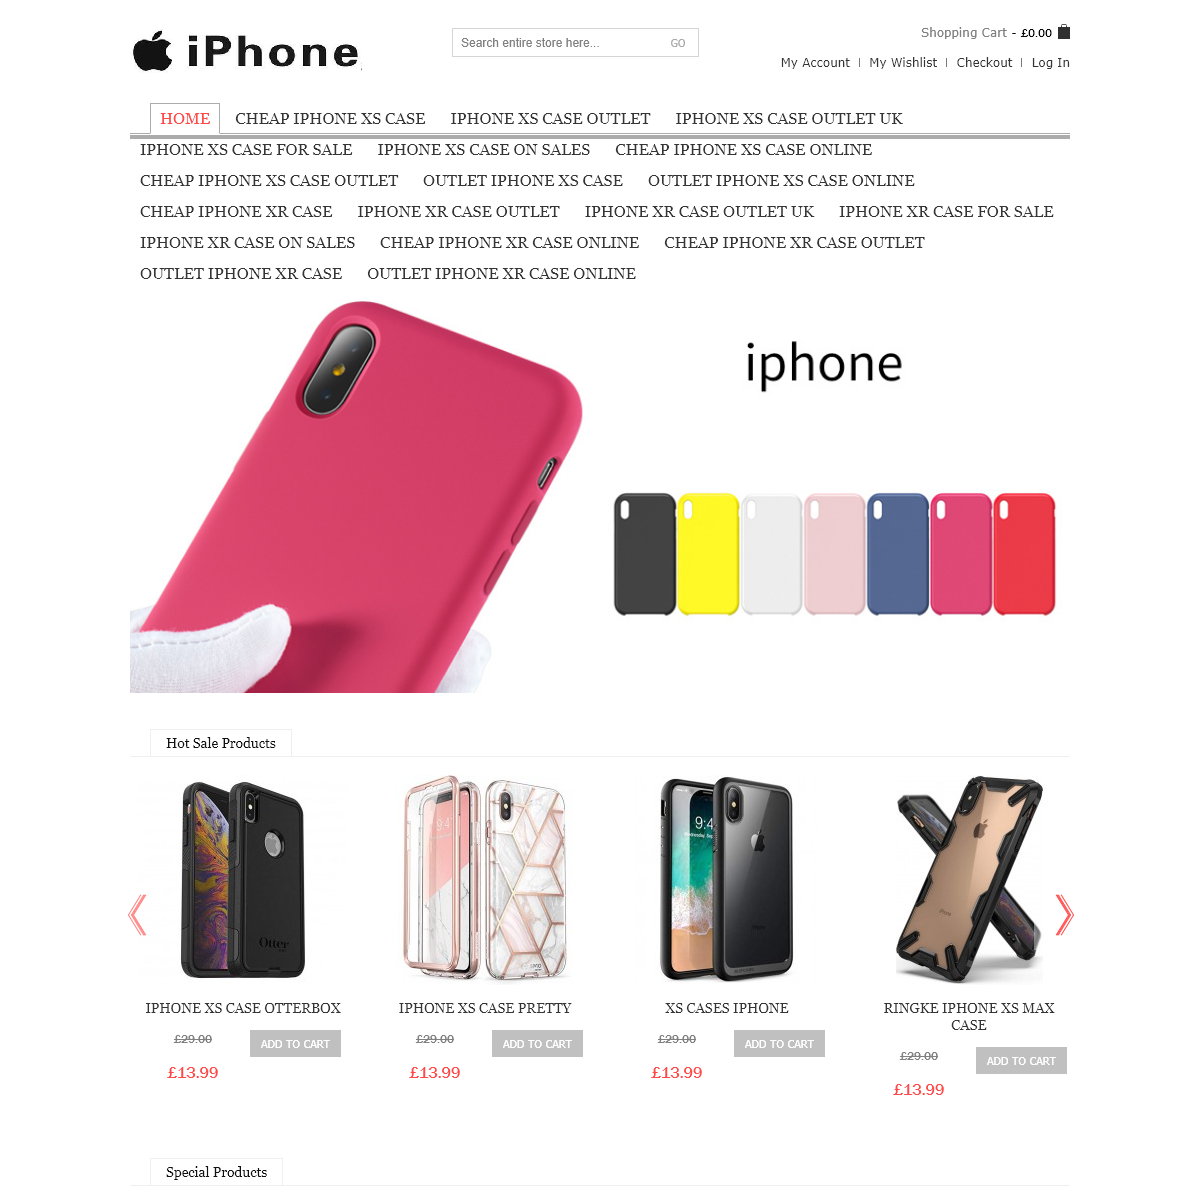 iphone xs case for sale - iphone xs case on sales - cheap iphone xs case online